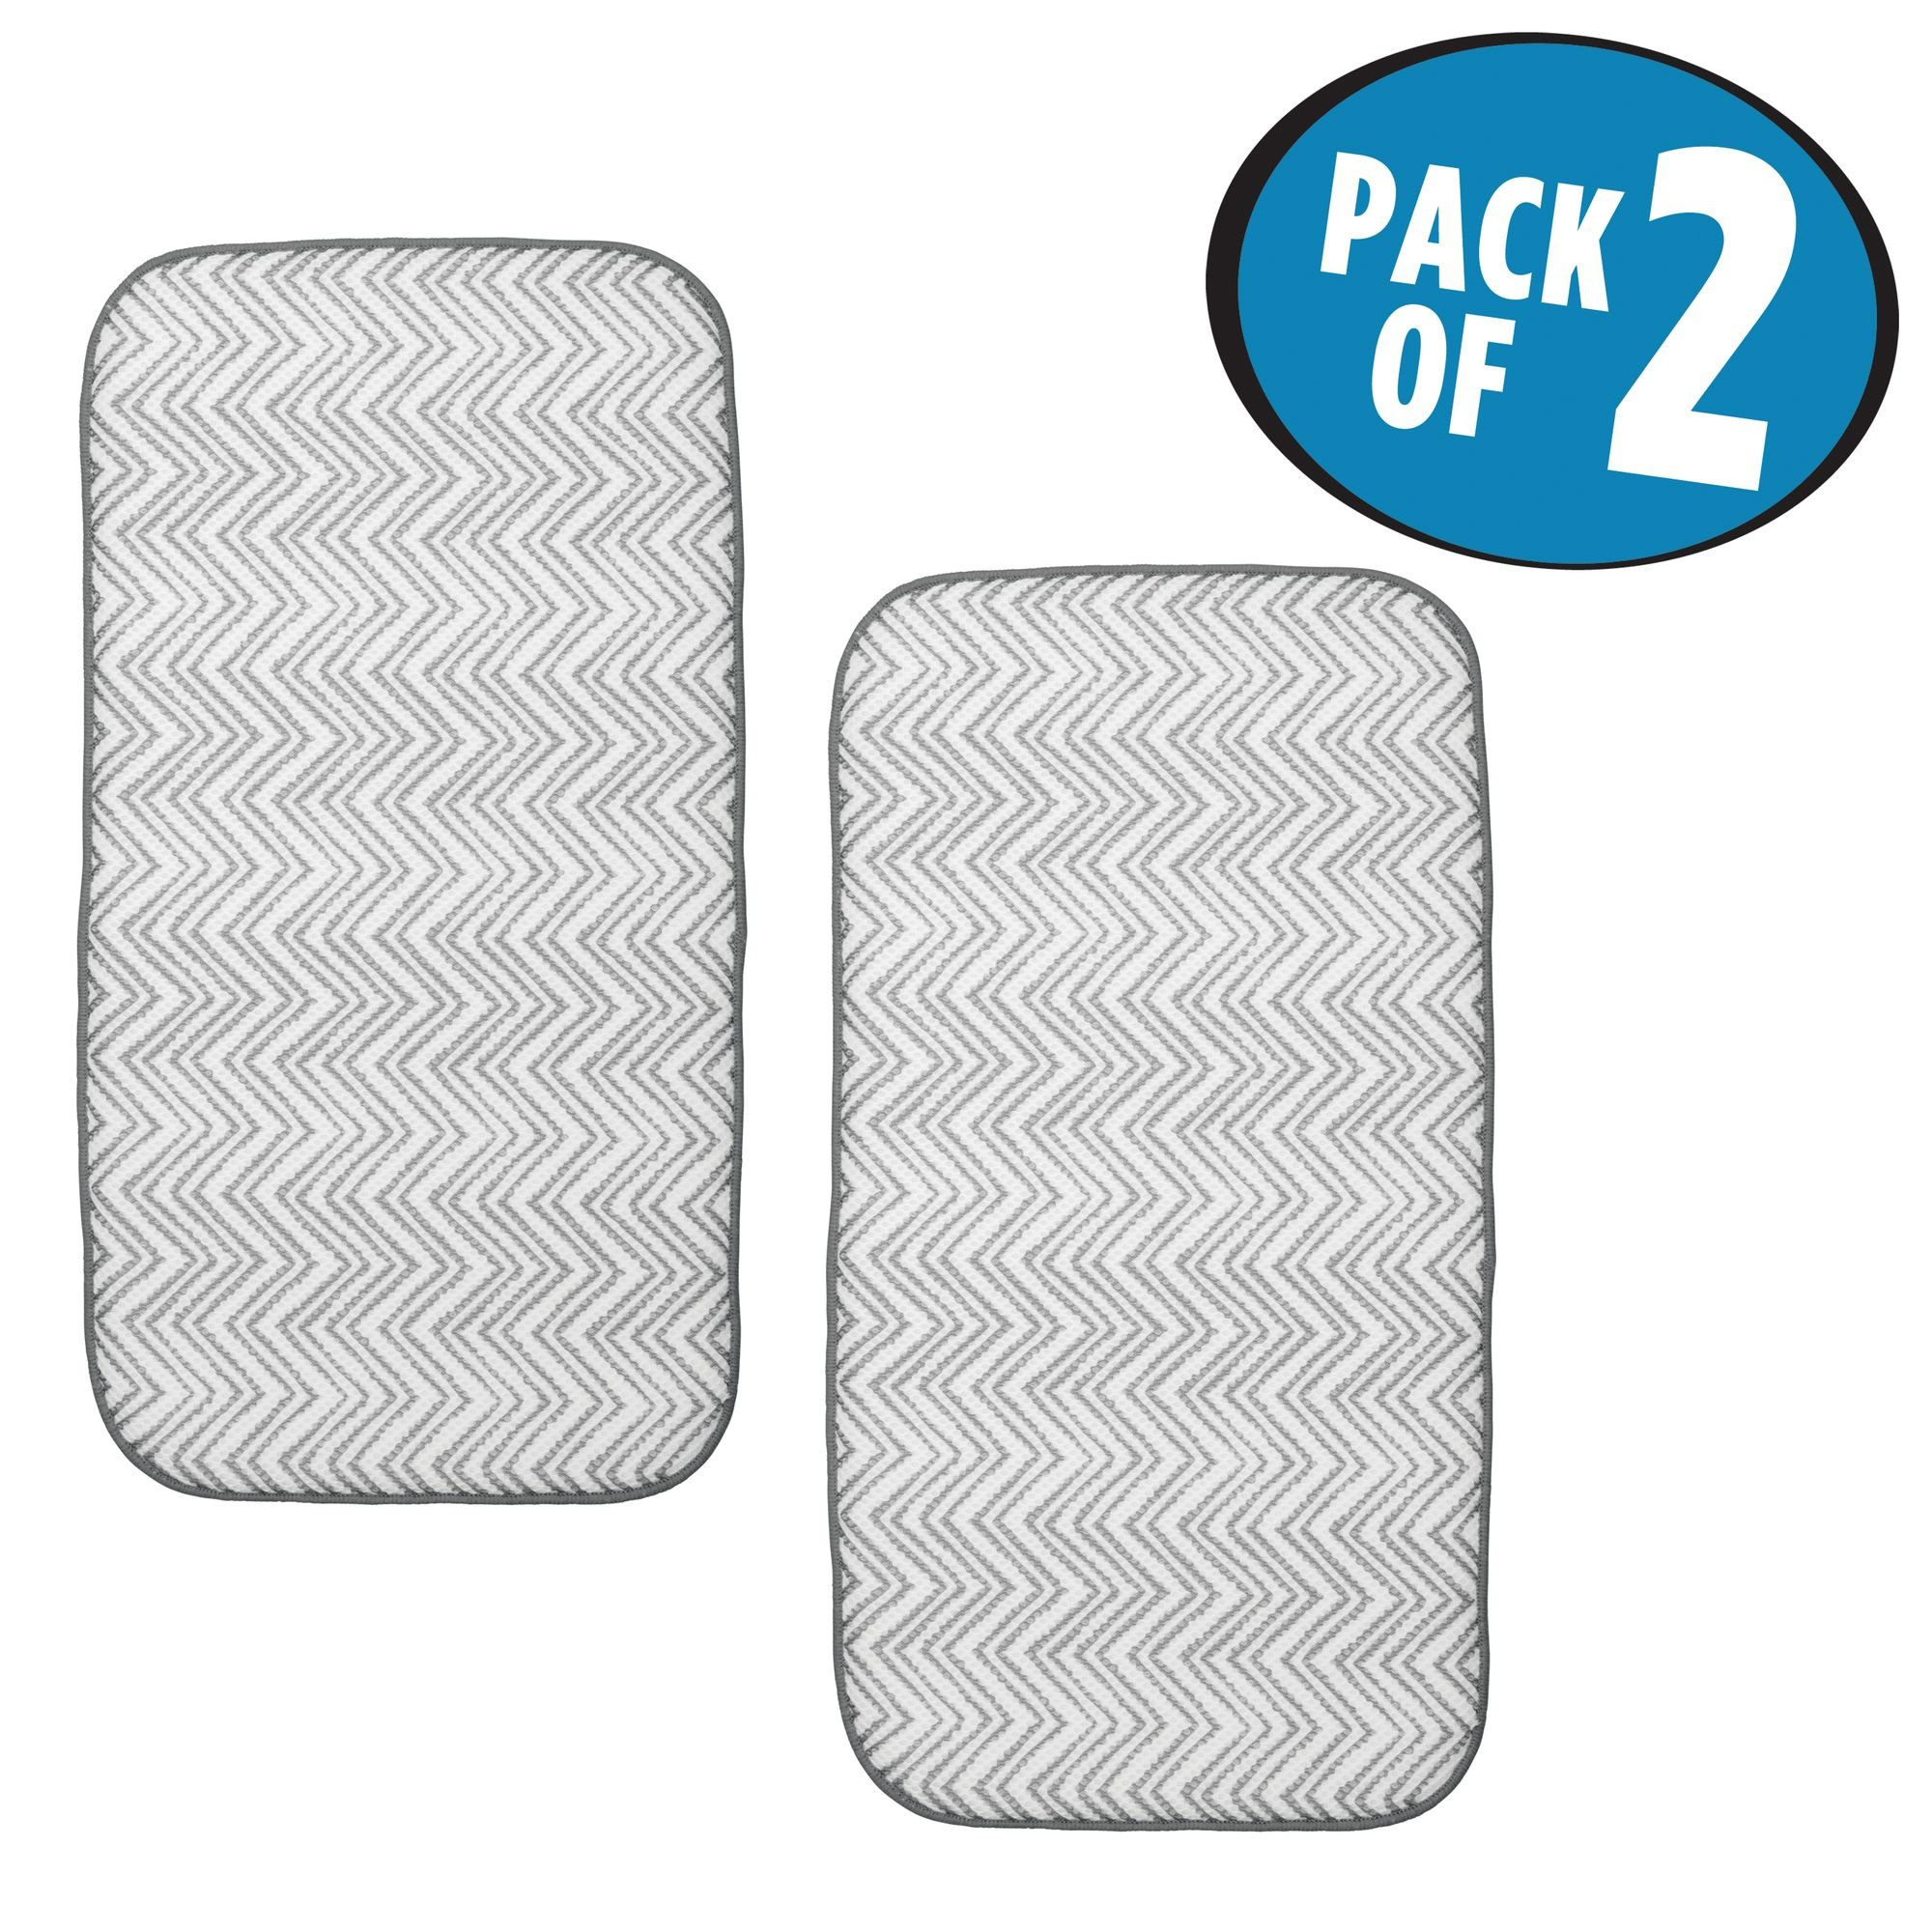 mDesign Mini Chevron Kitchen Countertop Dish Drying Mat - Pack of 2, Gray/White